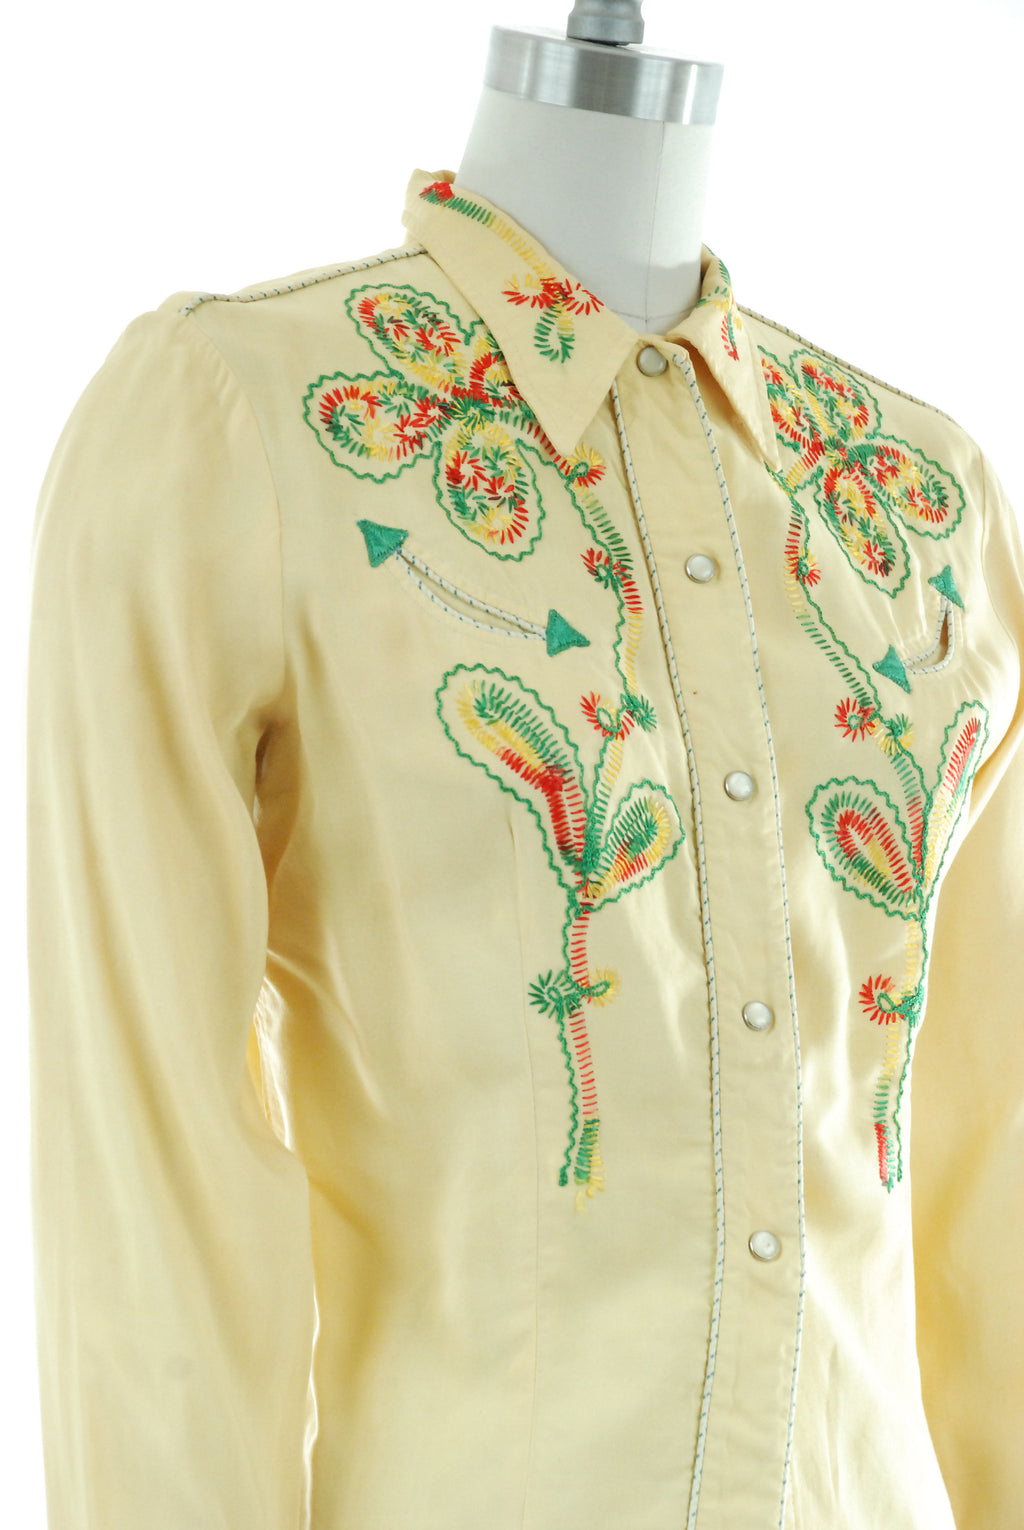 1950s Western Wear - Embroidered 50s Ladies Western Blouse in Light Yellow Cotton with Chain Stitched Cacti and Flowers